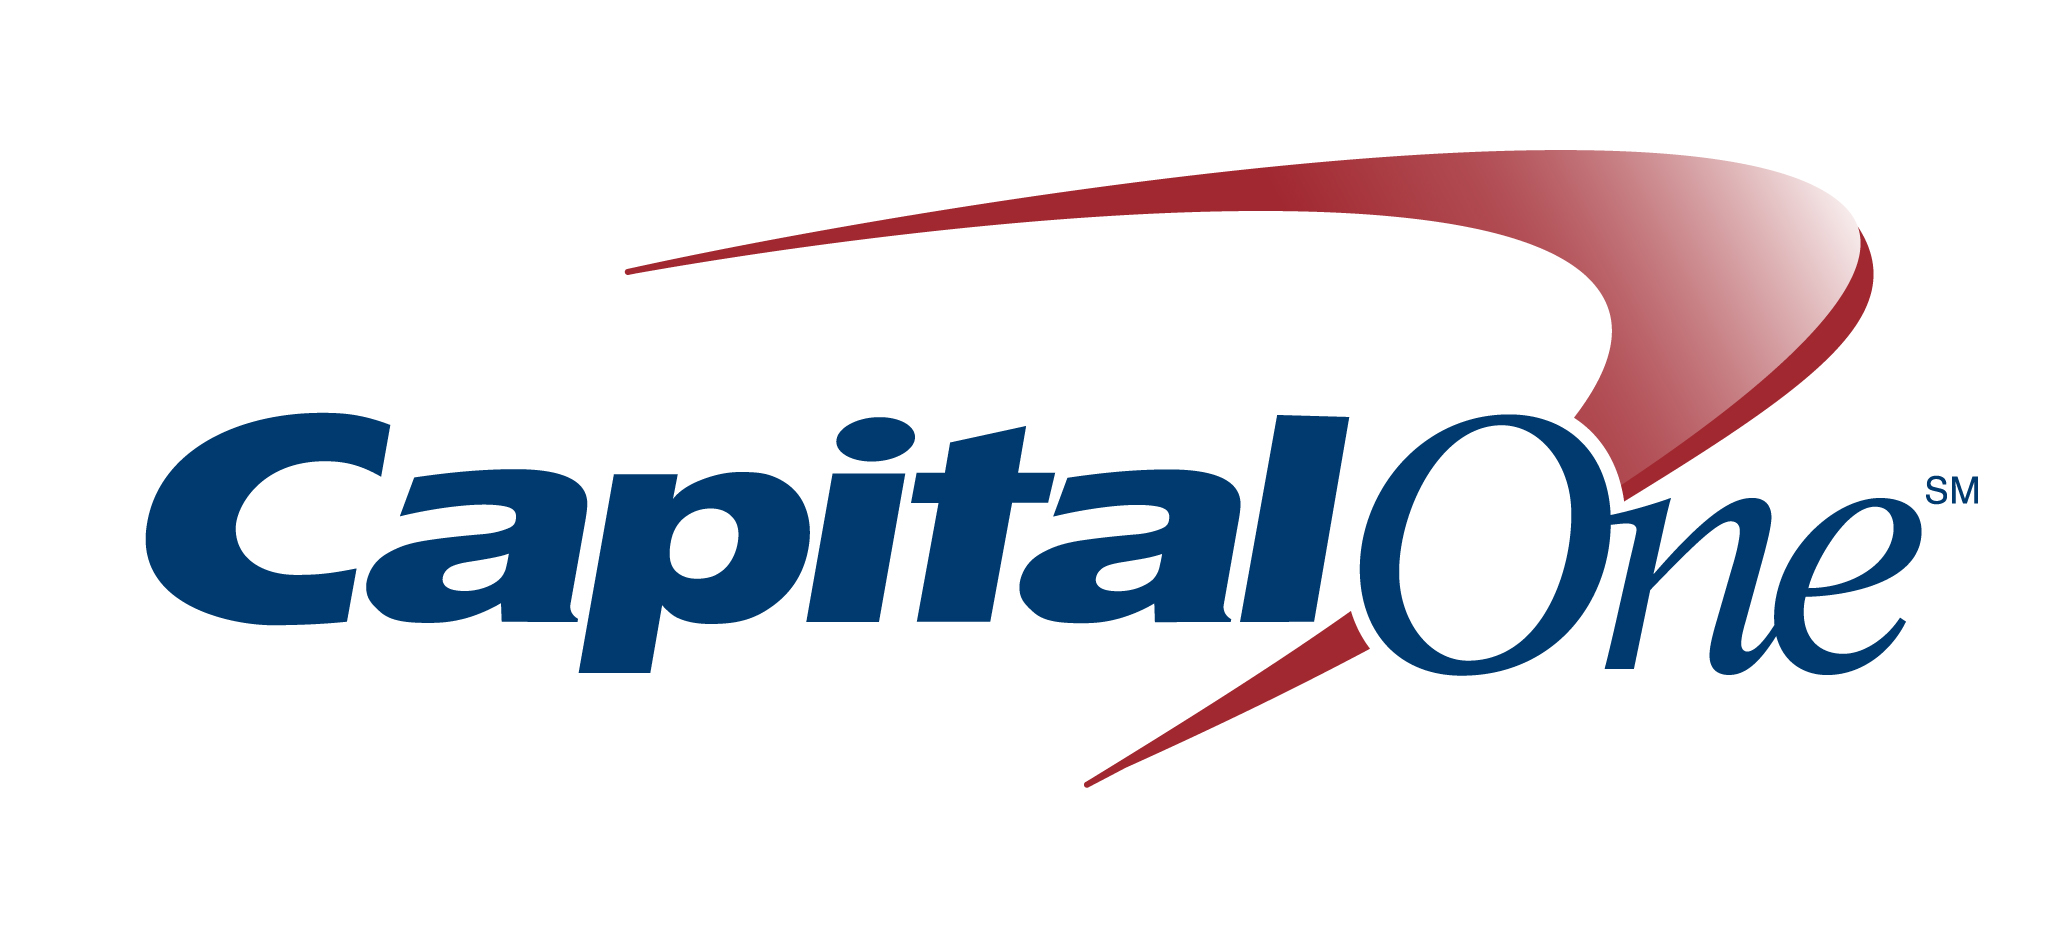 Capital-one-logo-2.jpg